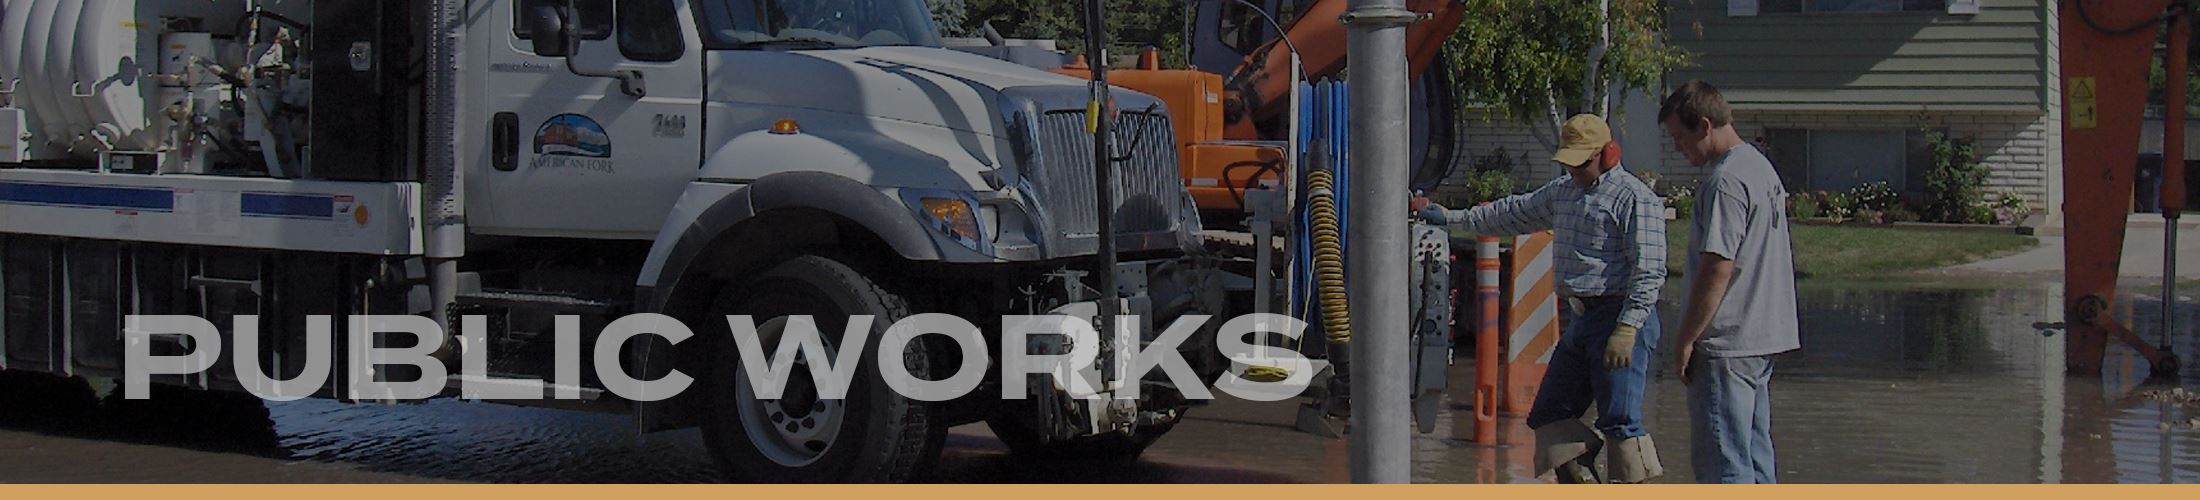 Website Banners 2020 - Public Works